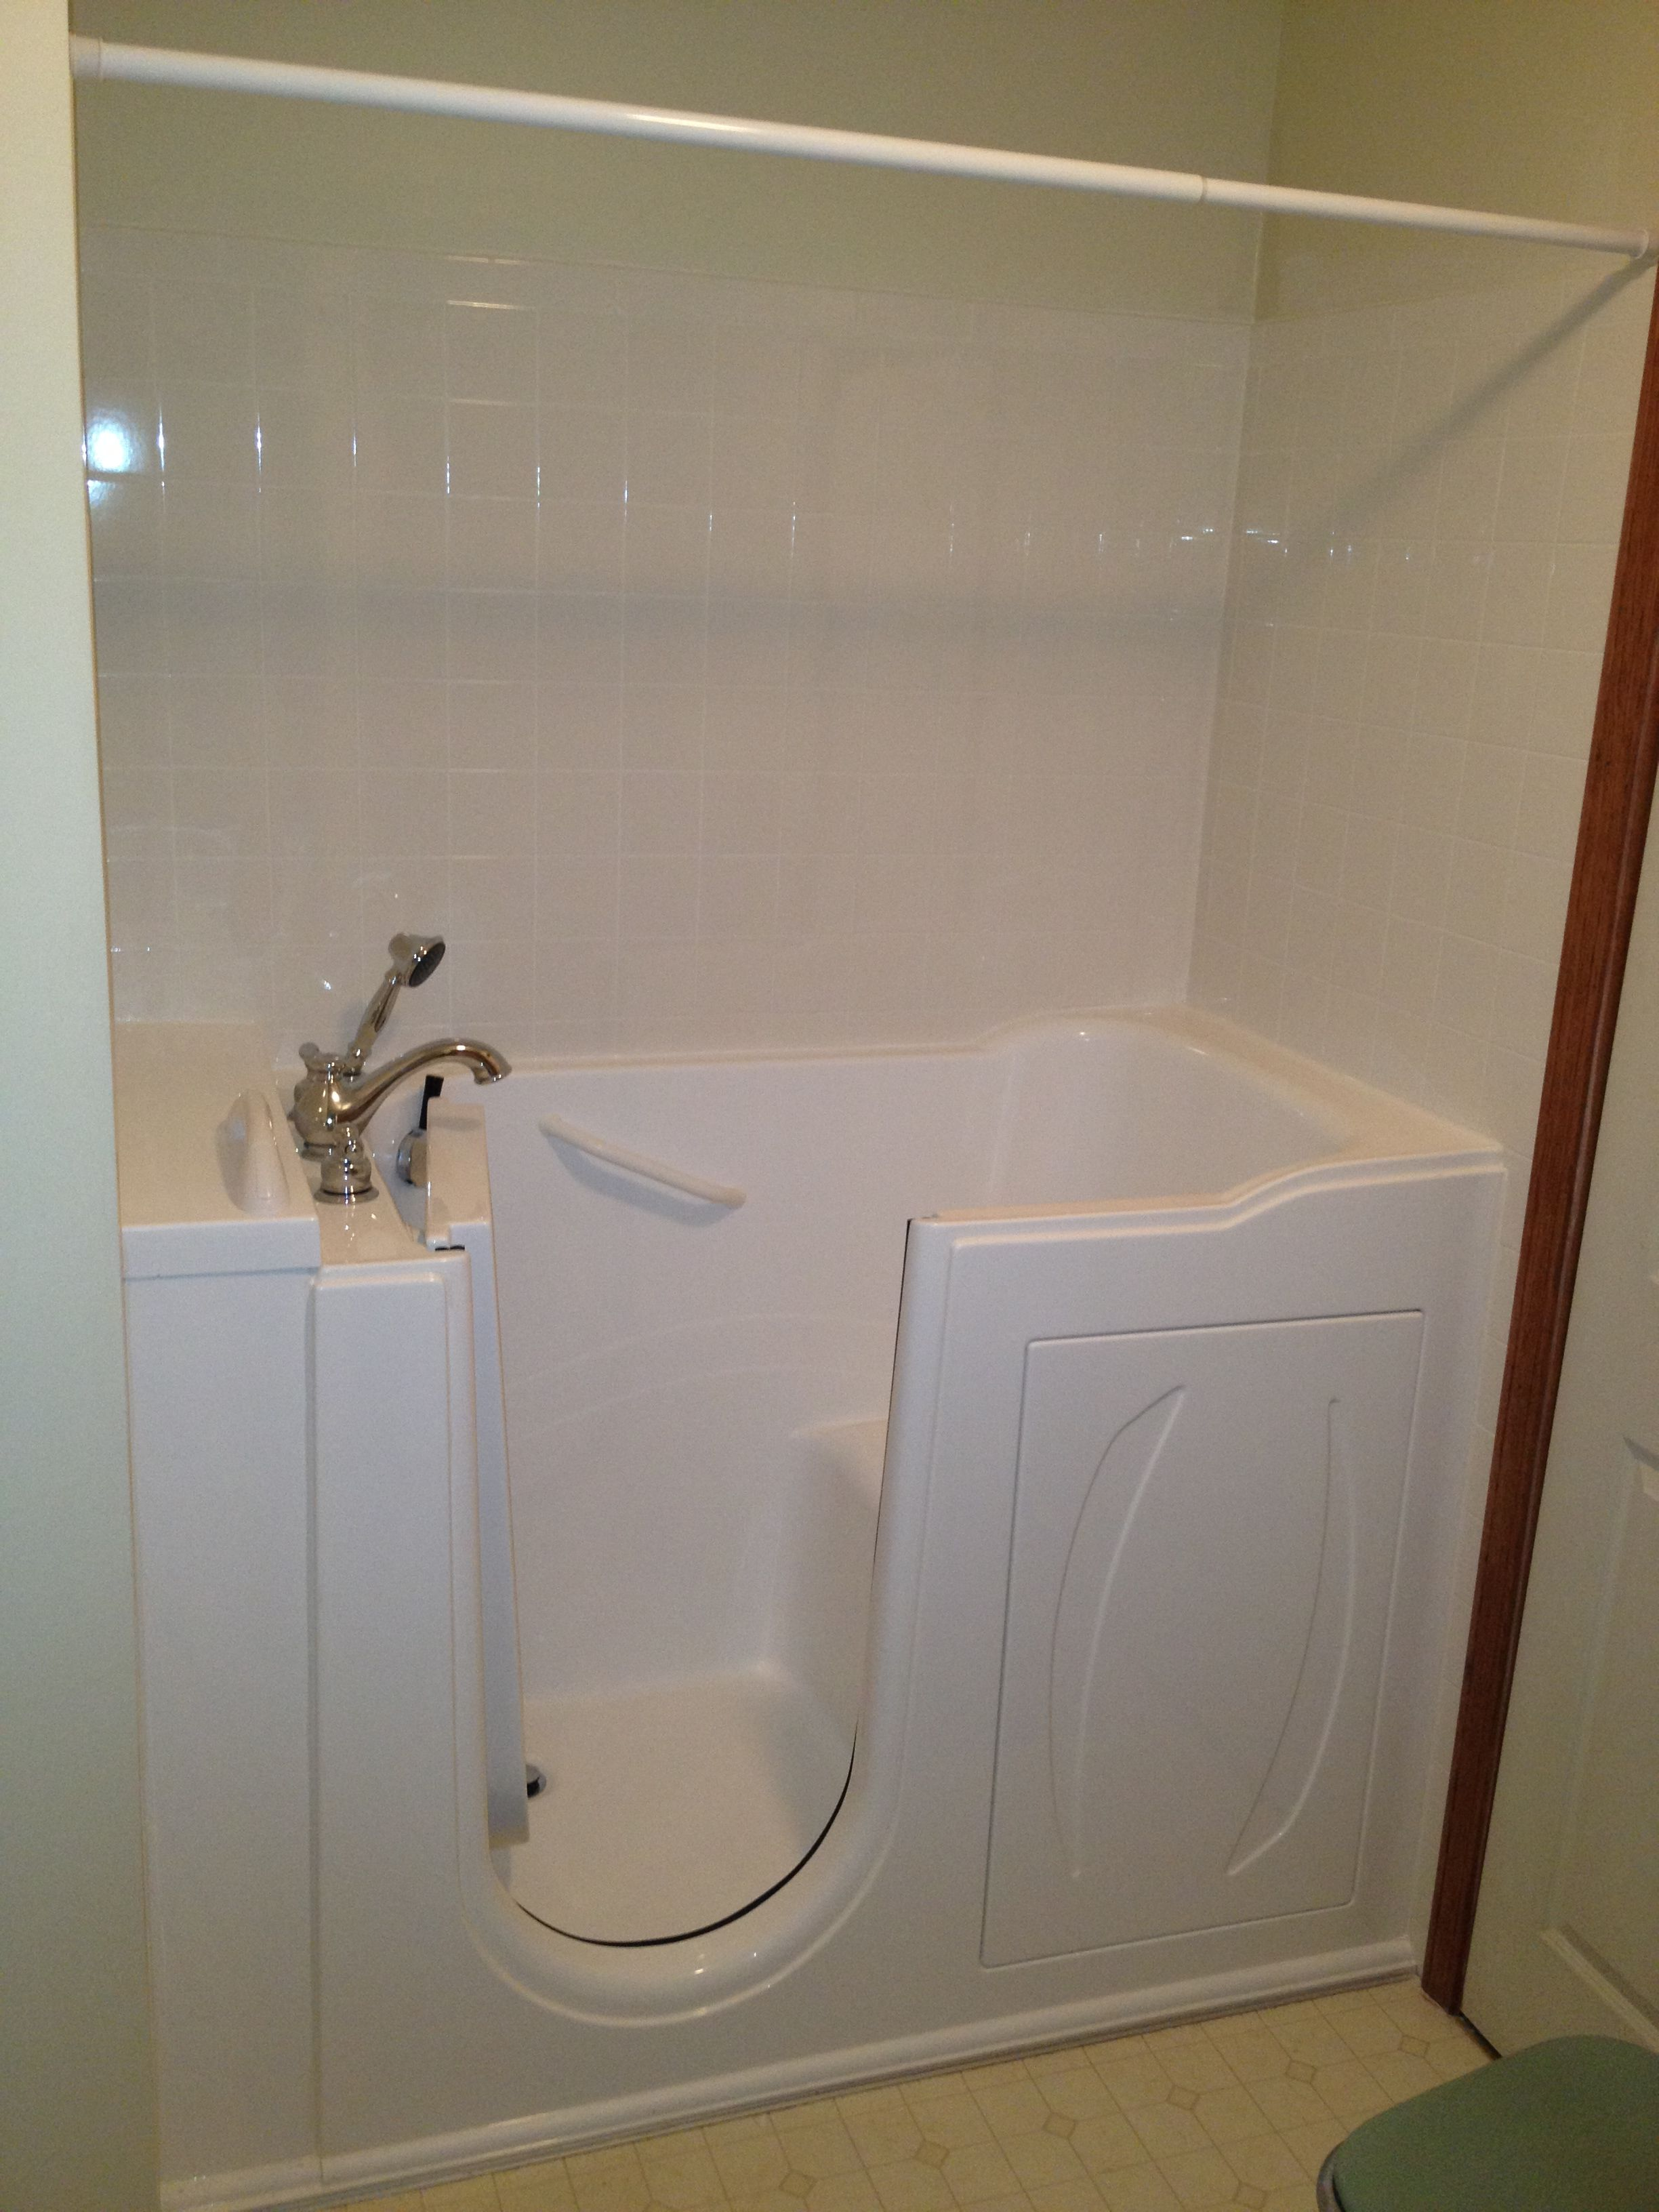 Serenity Walk In Bathtubs Come With An Adjustable Shower